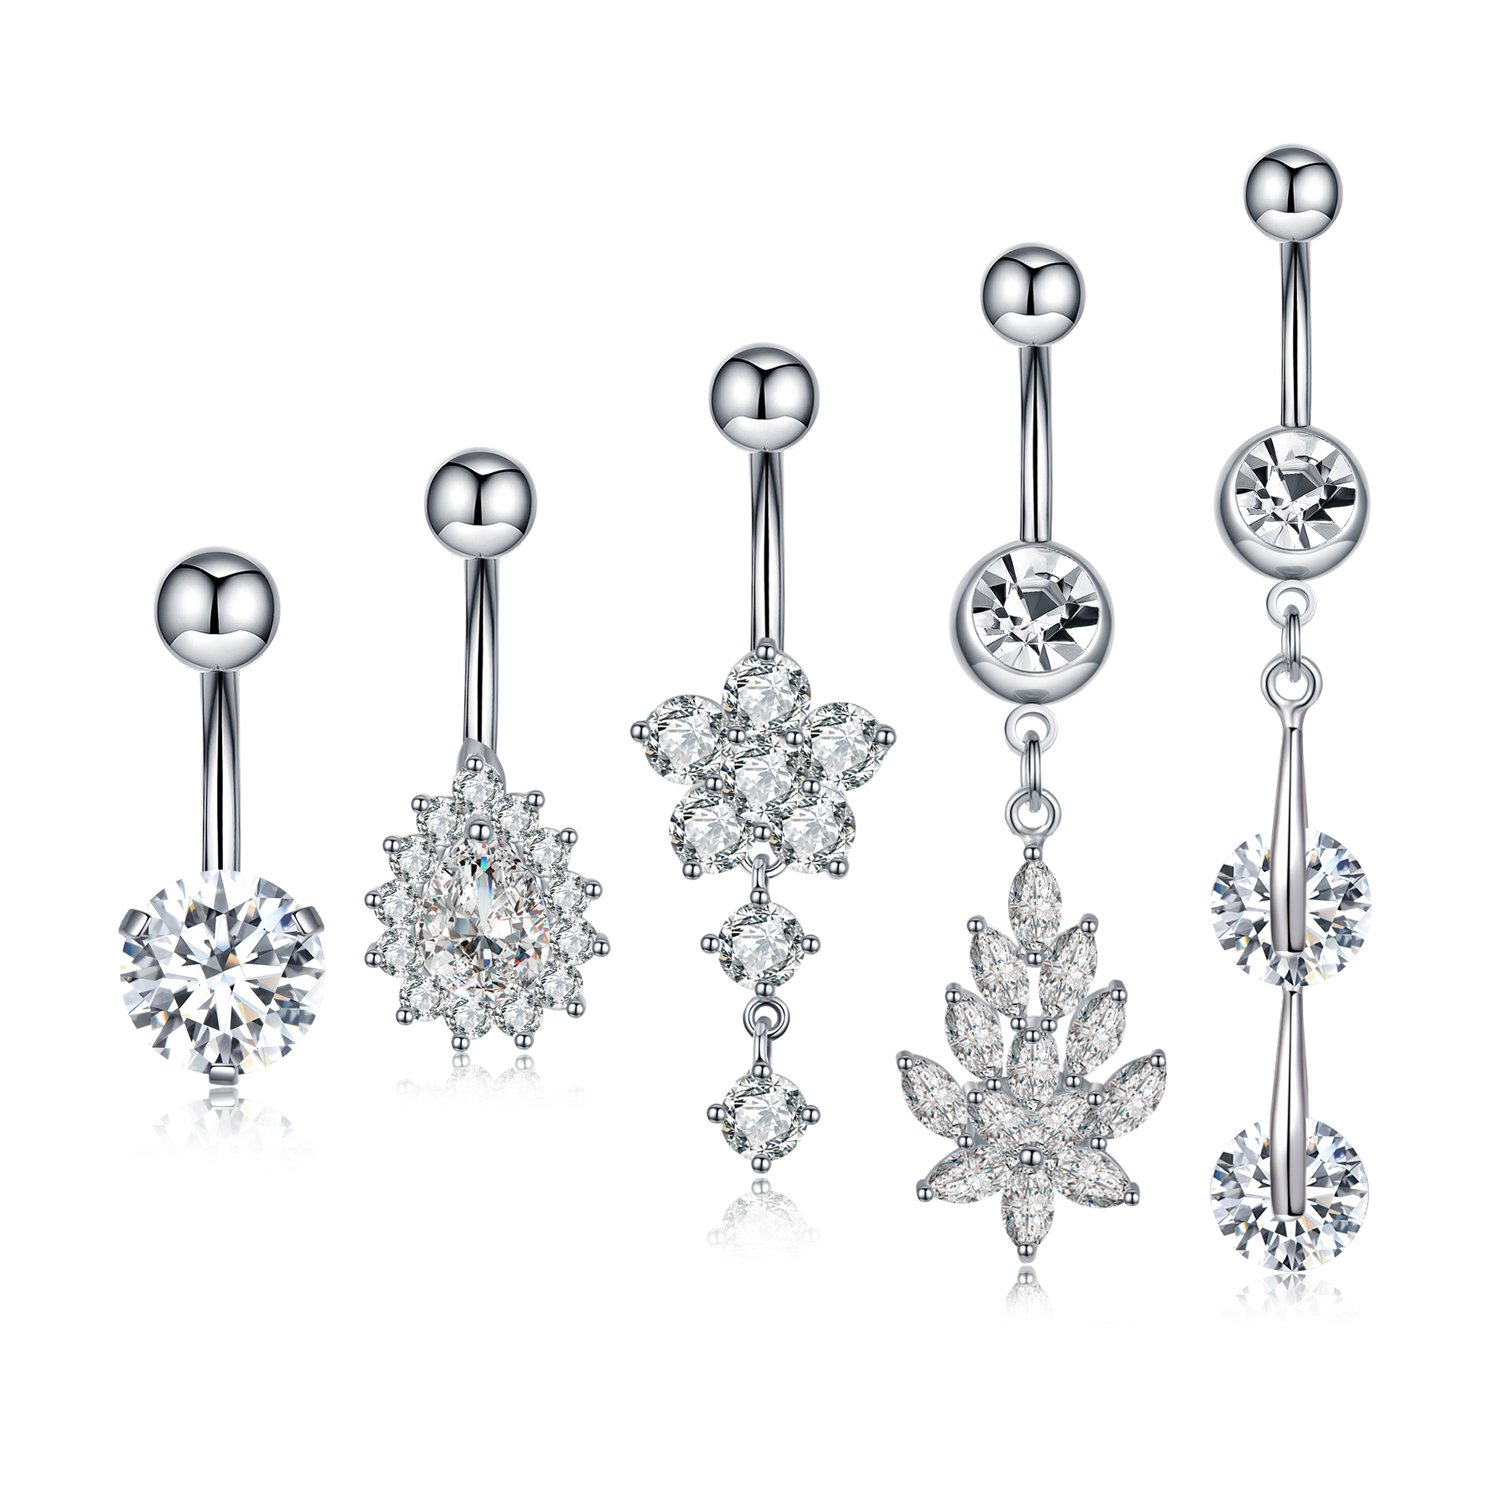 C&L 5PCS Crystal CZ Gem Surgical Steel Dangle Belly Button Rings Navel Body Jewelry for Women Curved Barbell Piercing